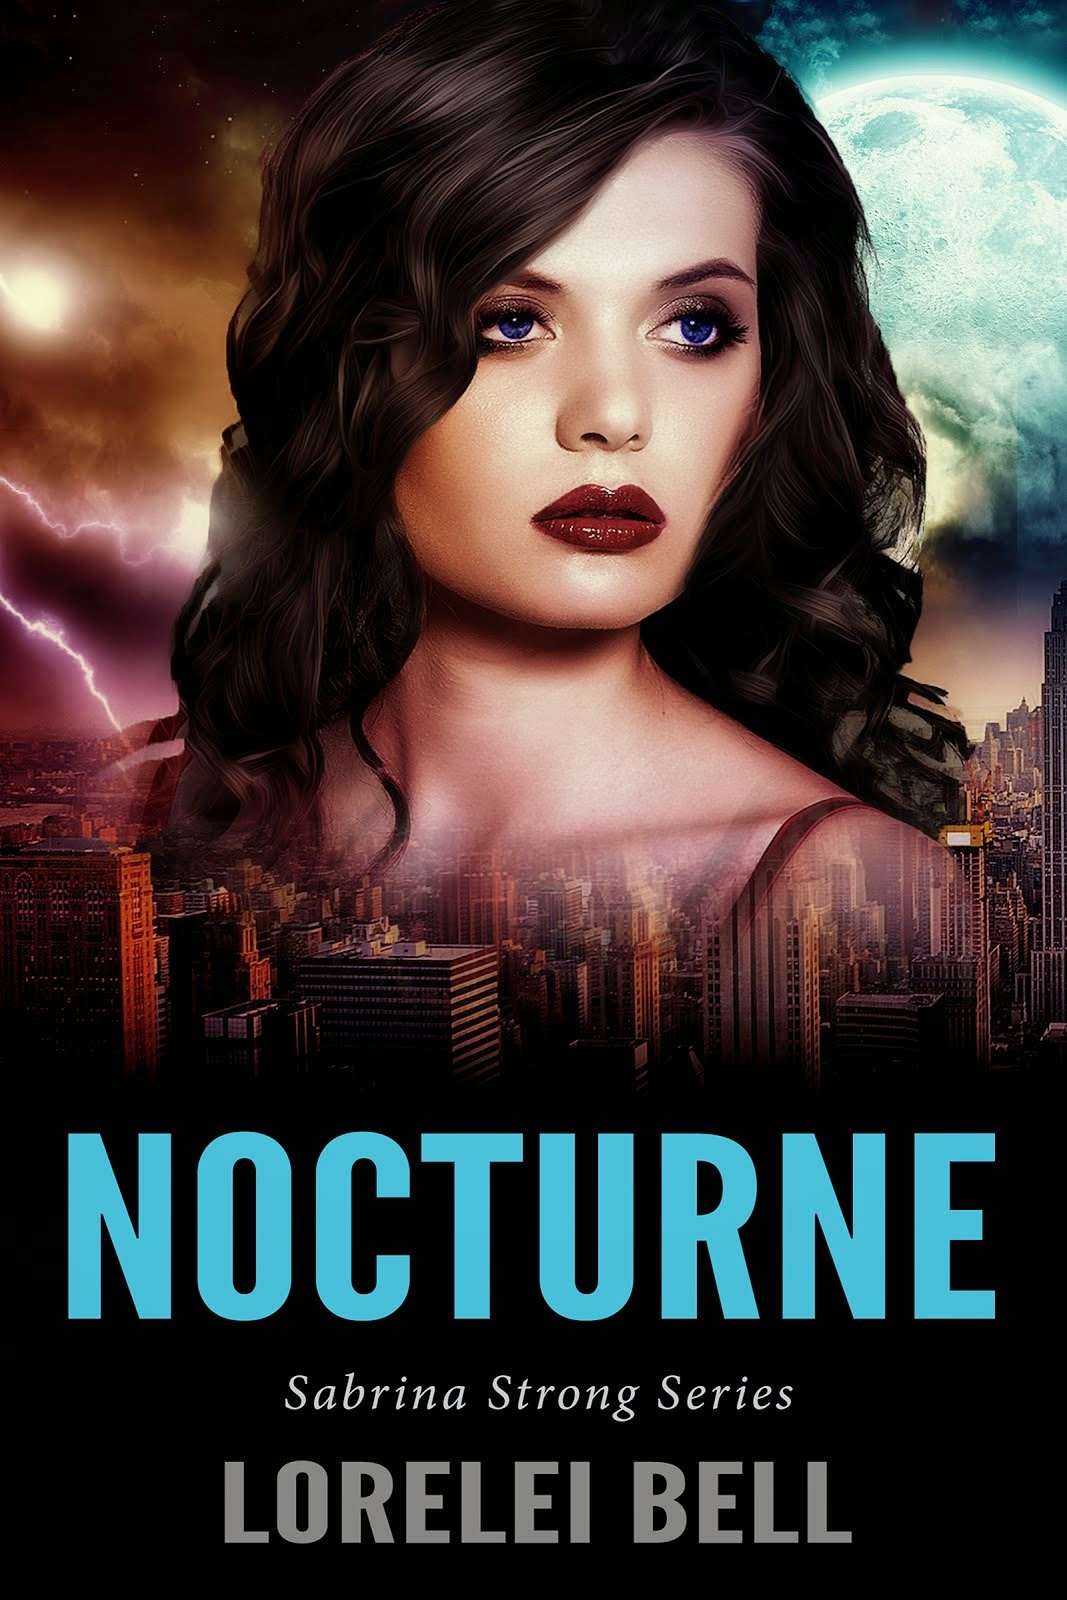 Nocturne ~ 3rd book in Sabrina Strong series